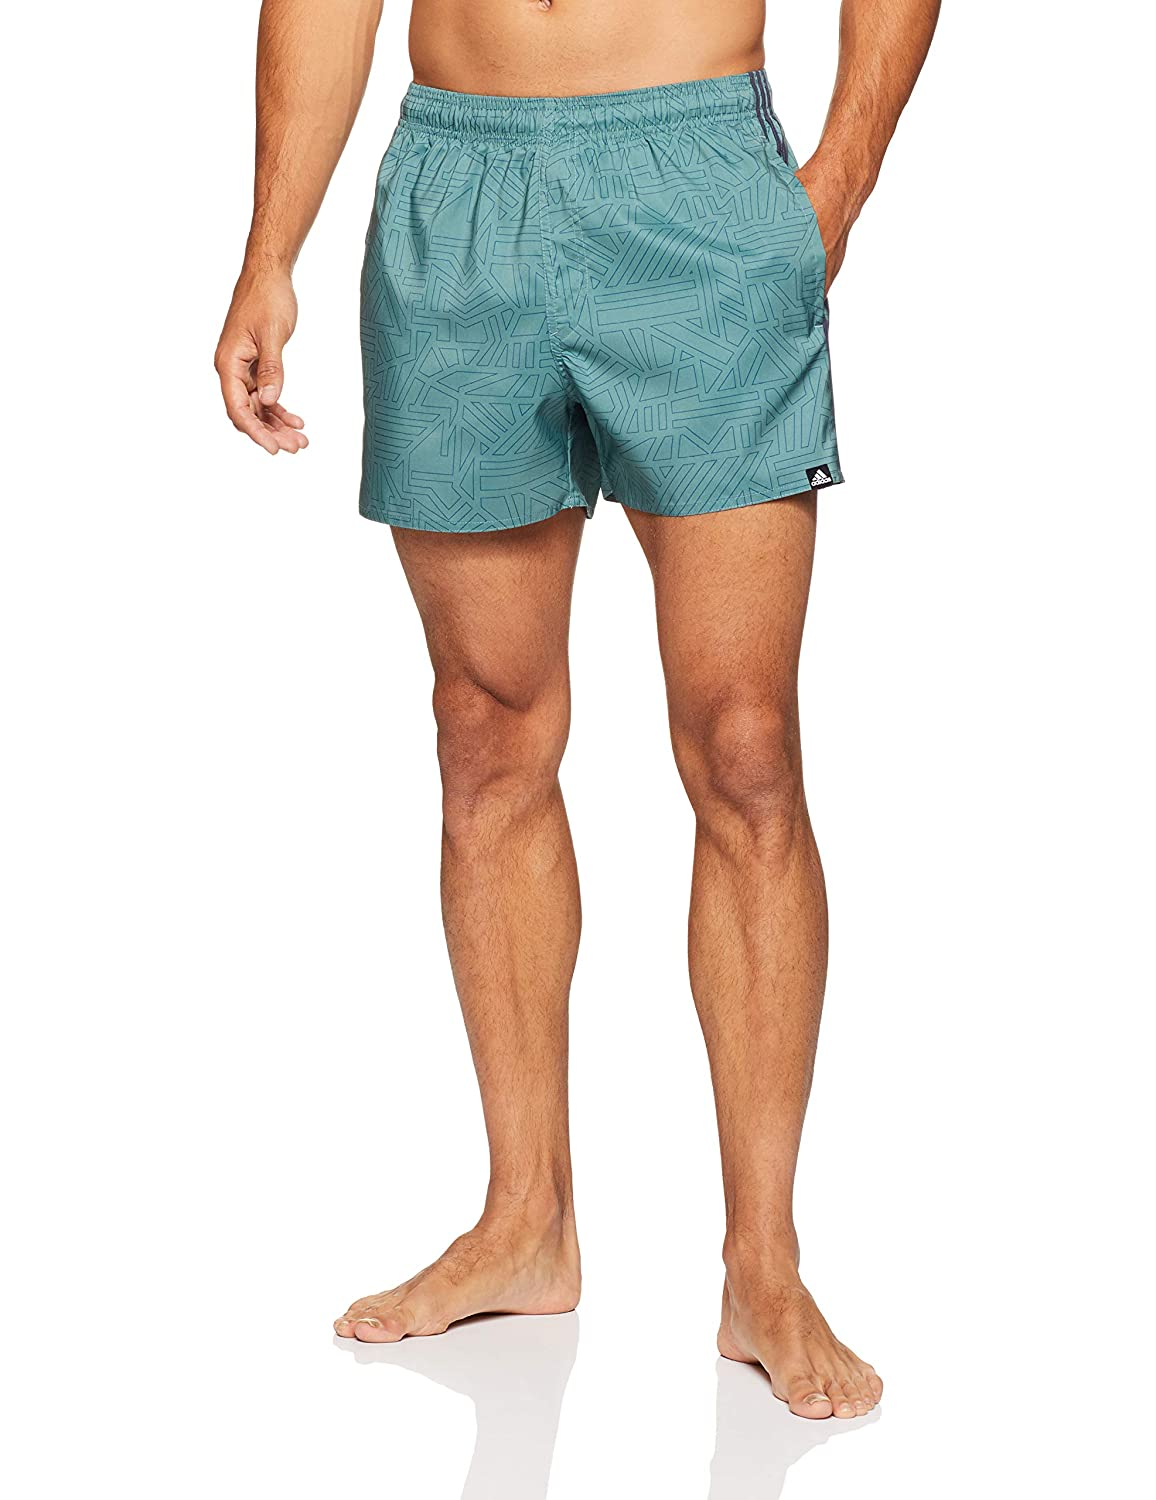 c524dc32cb adidas Men's 3-Stripes AOP Very Length Swim Shorts: Amazon.co.uk: Sports &  Outdoors